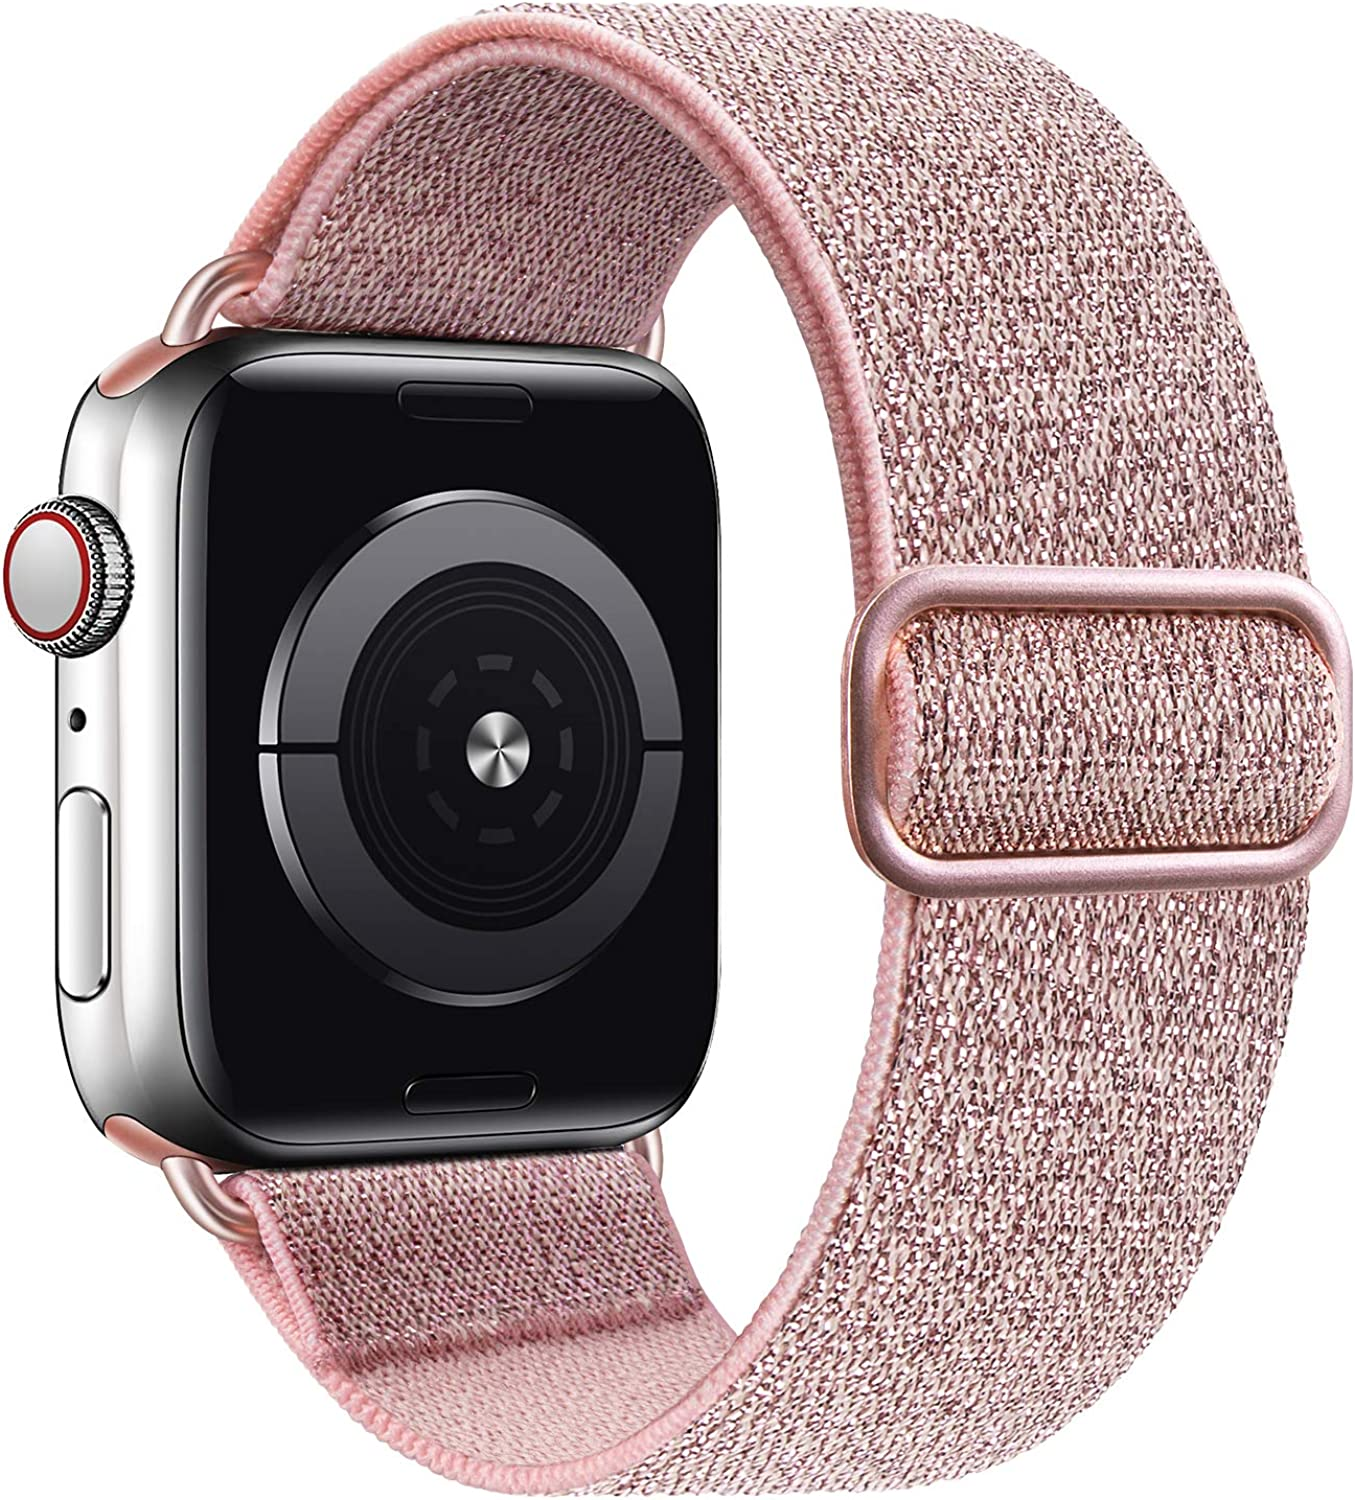 MEULOT Stretchy Braided Solo Loop Band Compatible with Apple Watch Band 38mm 40mm Adjustable Nylon Elastic Sport Women Men Strap Compatible with iWatch Series 6/5/4/3/2/1 SE PinkGold 38/40S